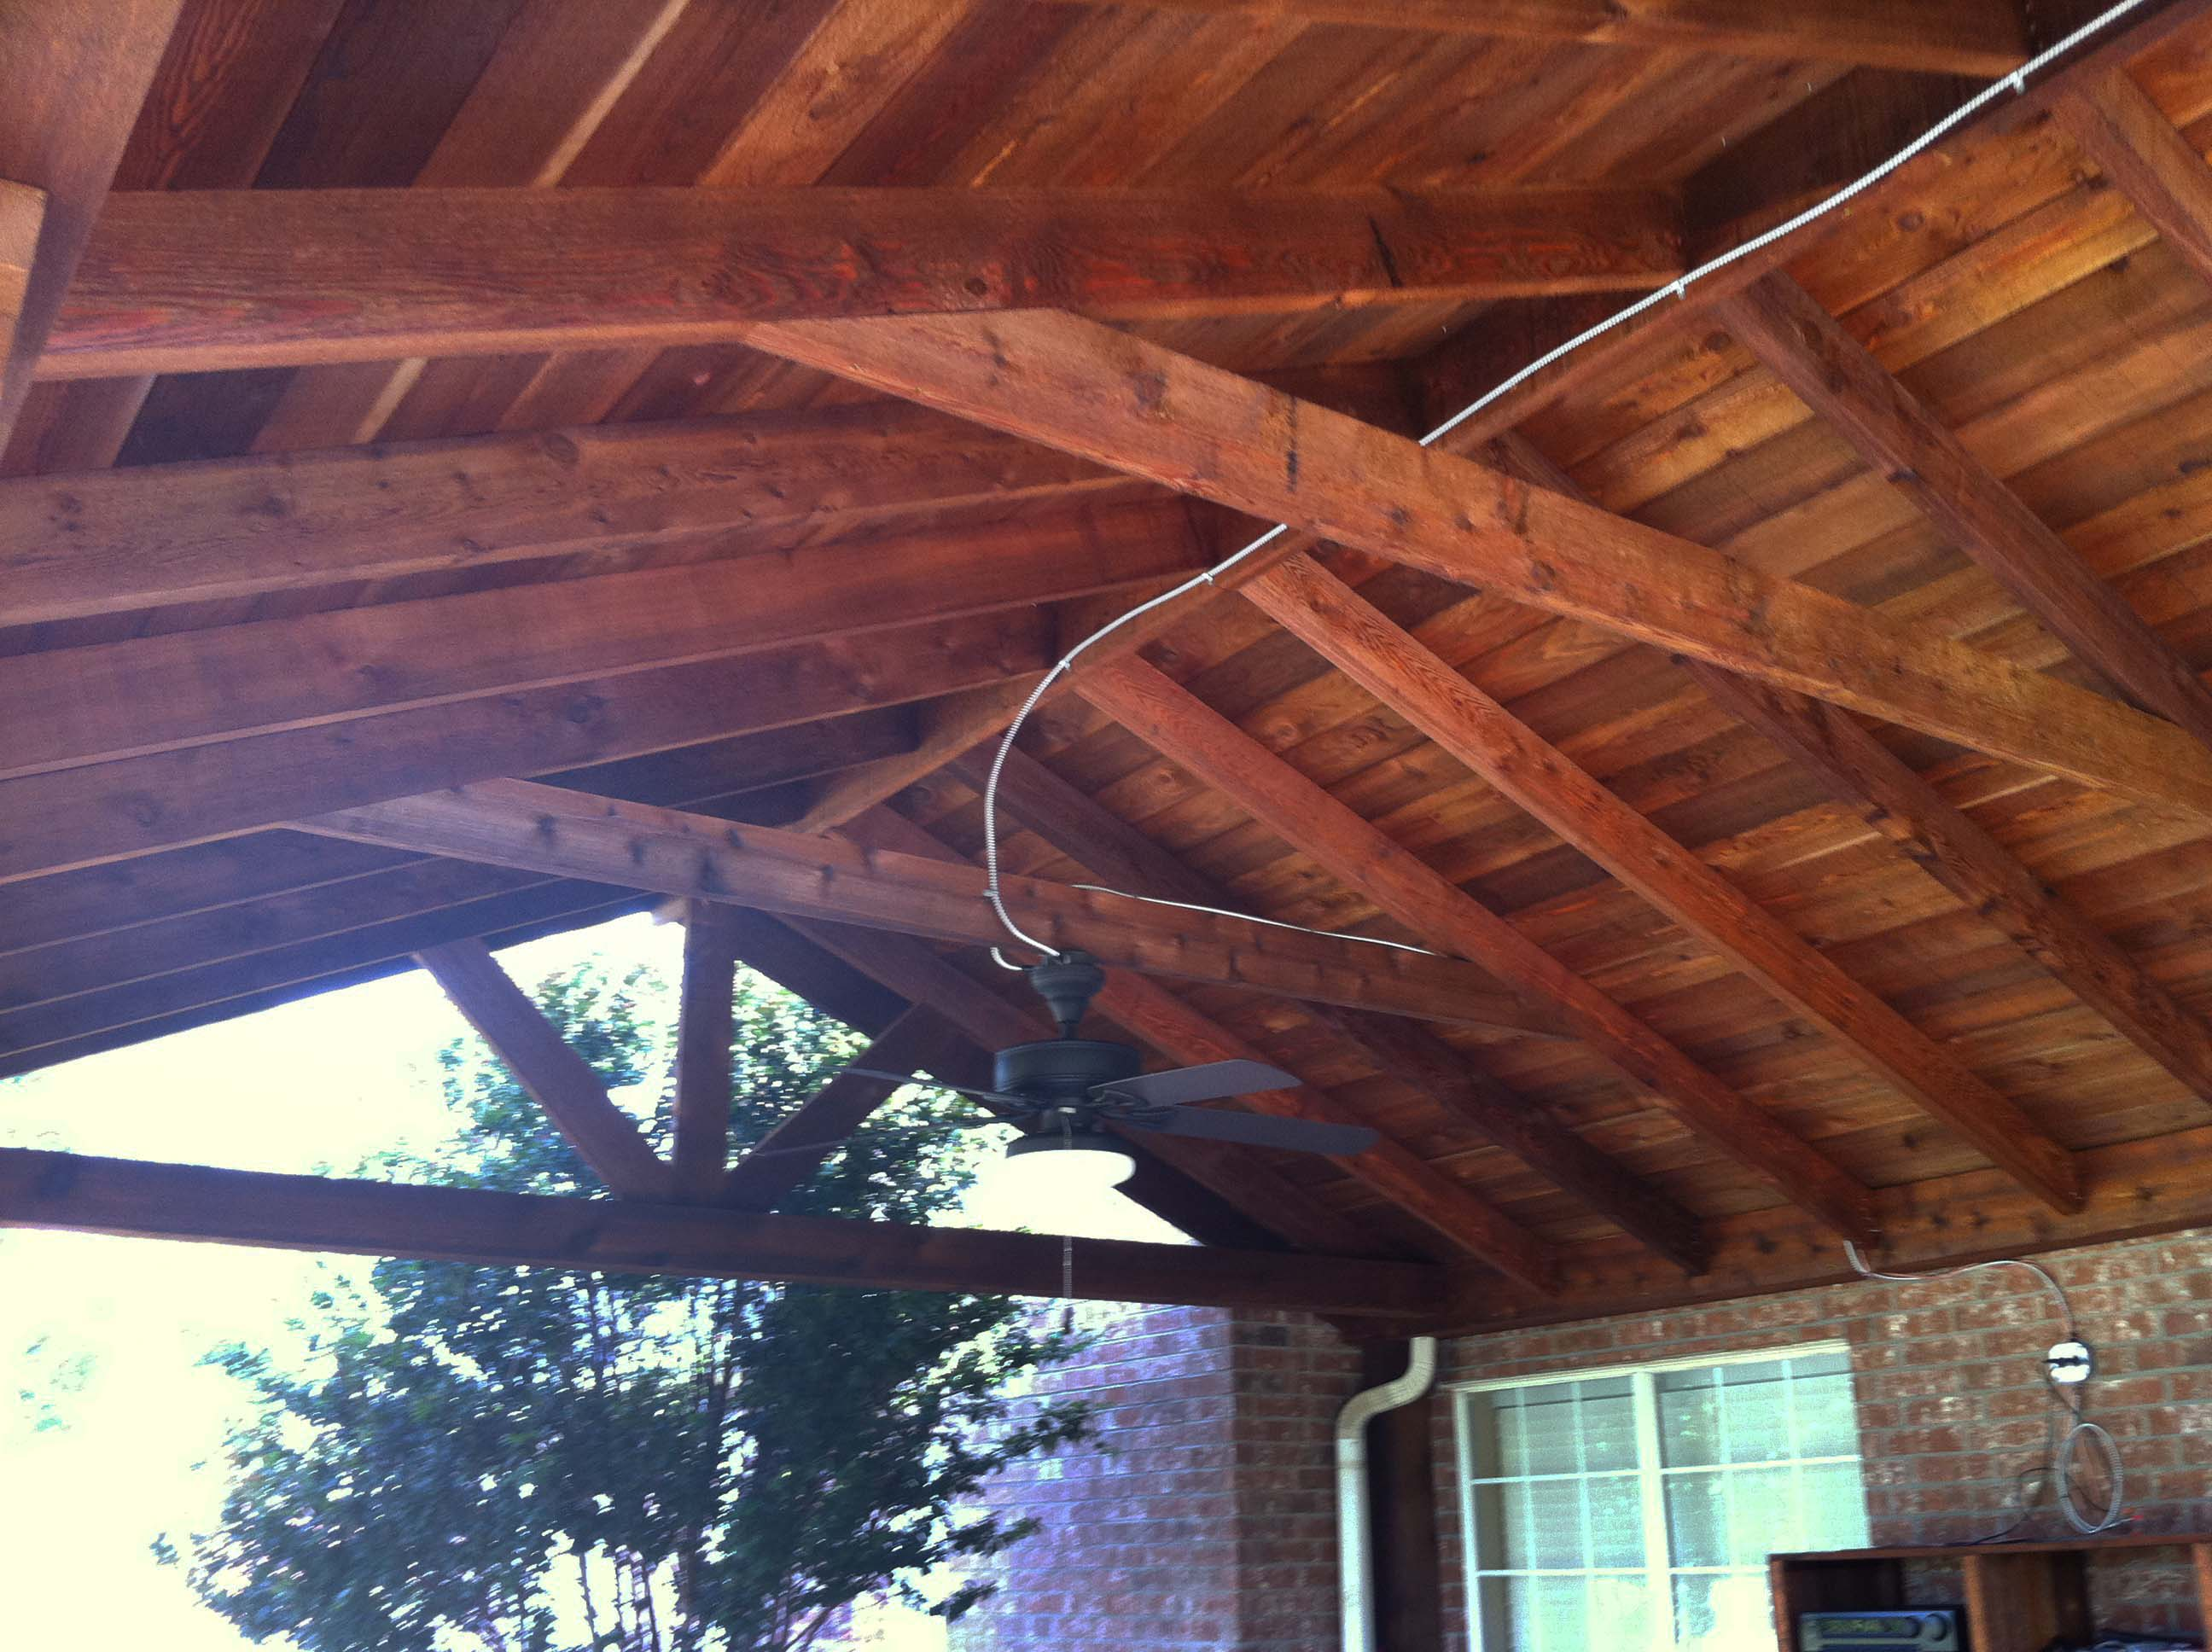 Covered Porch Ceiling Fans | Zef Jam